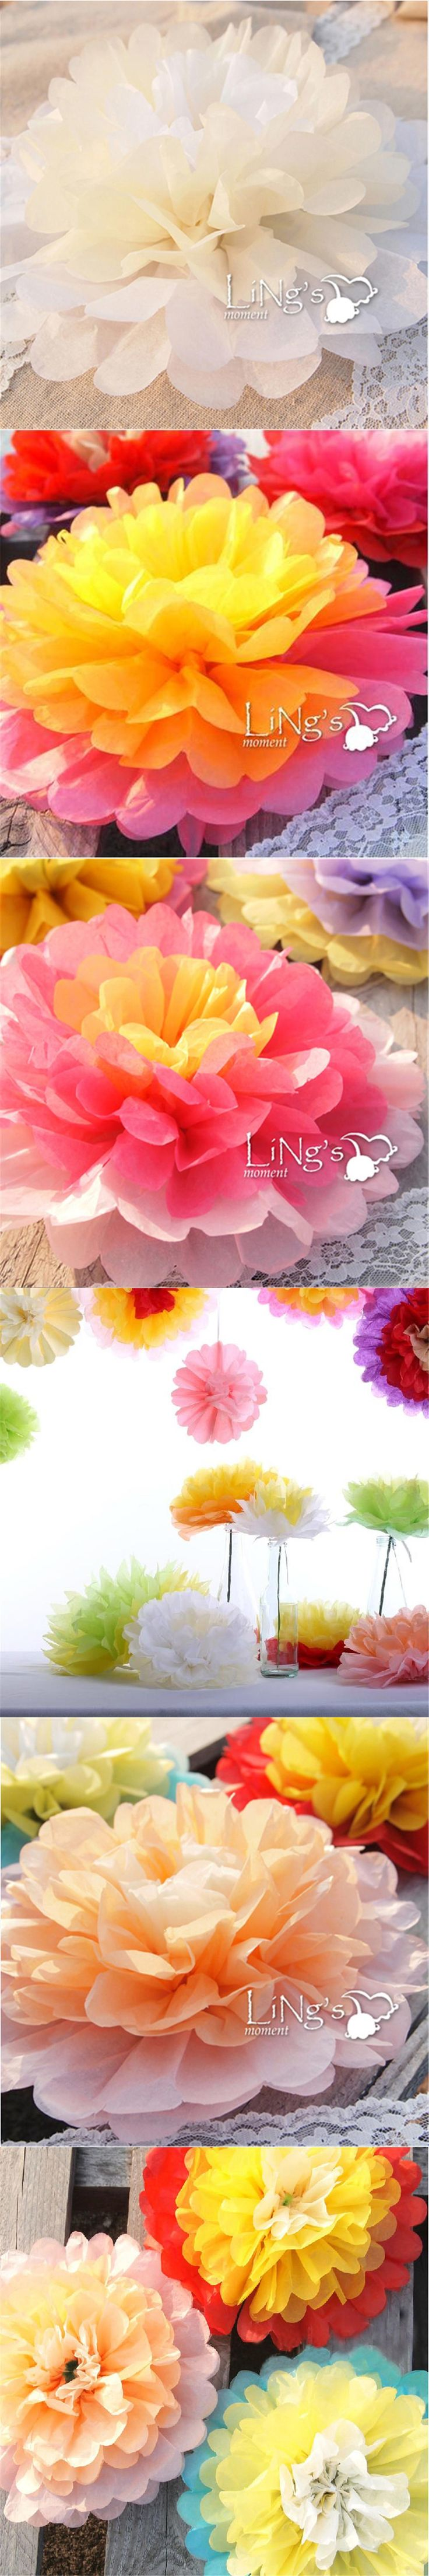 10inch(25cm) 5pieces/Lot Giant Tissue Paper Flower Rose